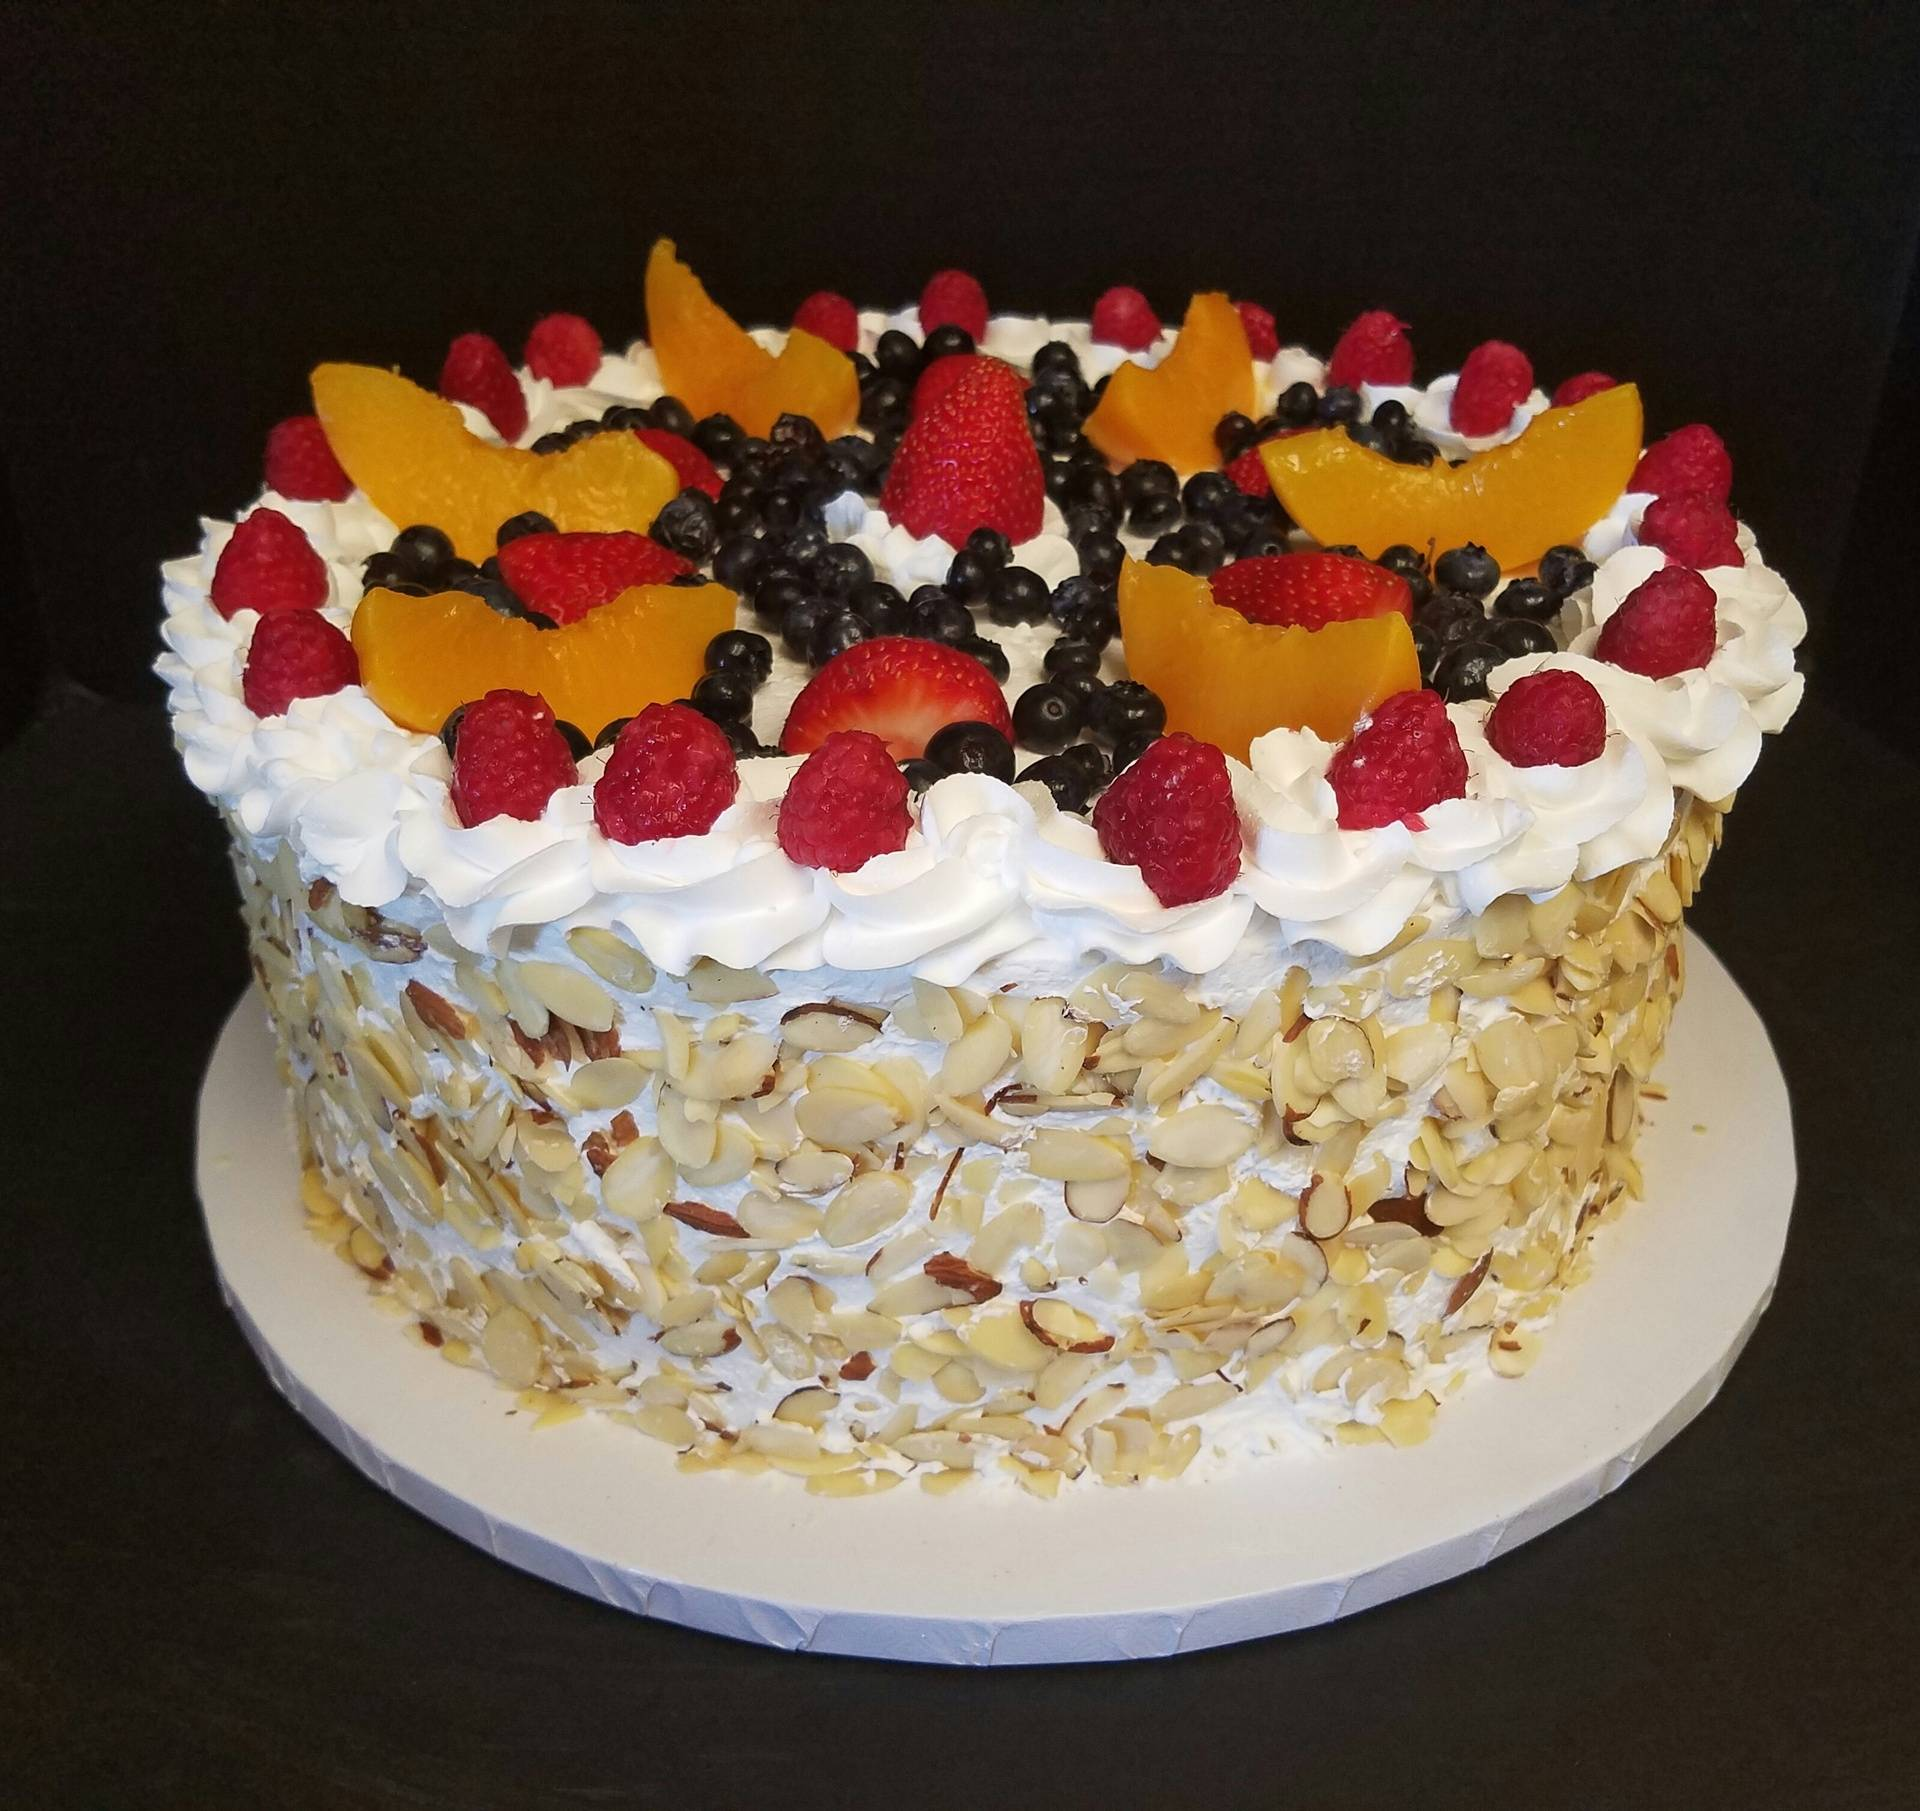 Fruit Cake with Almond Slivers